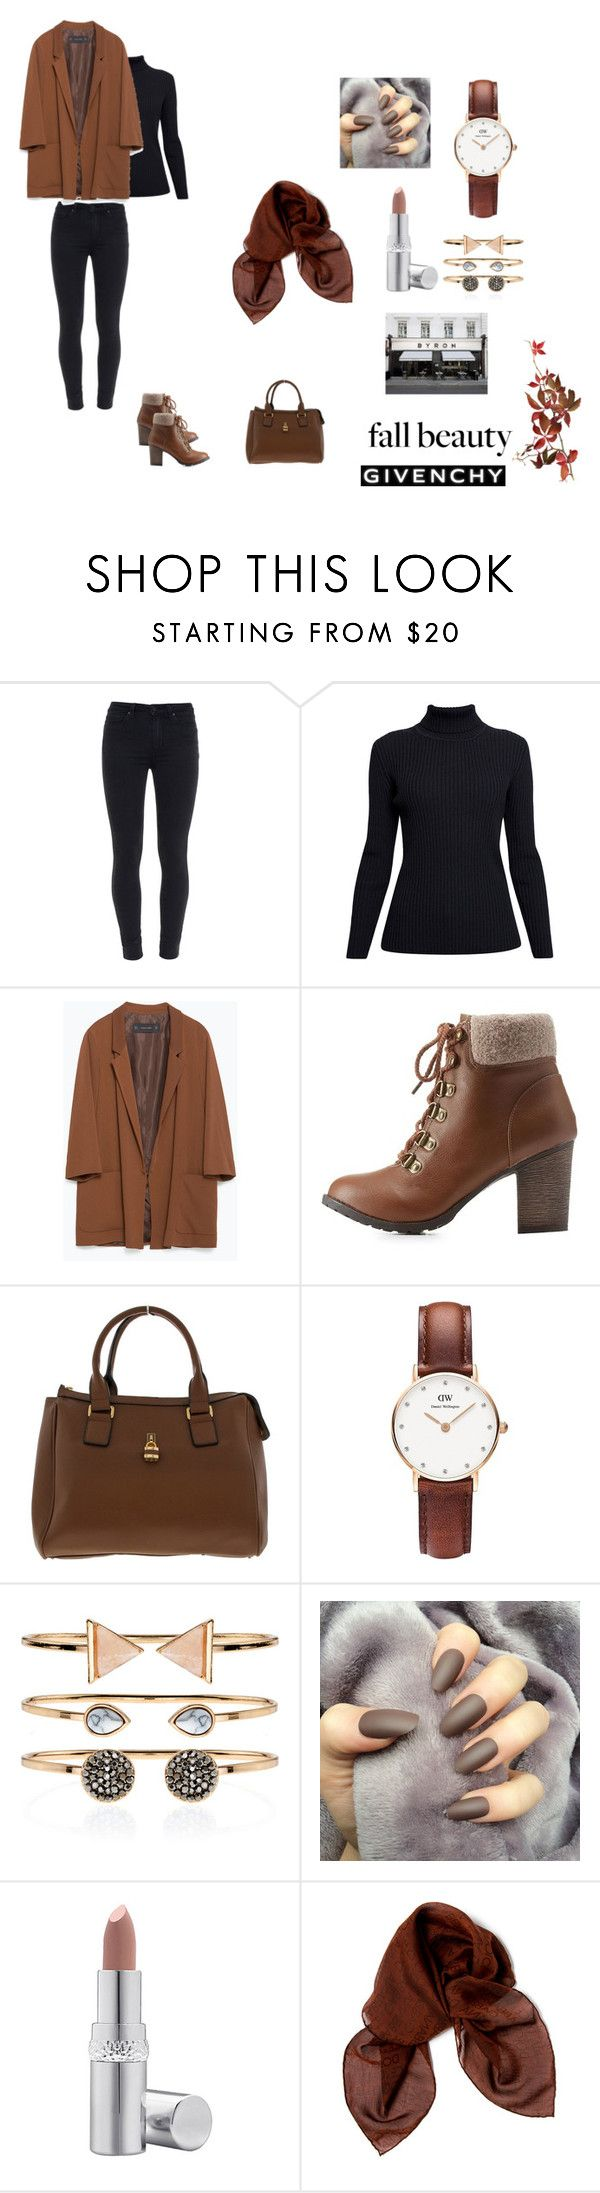 """""""Laila (16)"""" by hipsterfashionista1 ❤ liked on Polyvore featuring Paige Denim, Rumour London, Zara, Charlotte Russe, Daniel Wellington, Accessorize, La Prairie, Dolce&Gabbana, BYRON and Givenchy"""